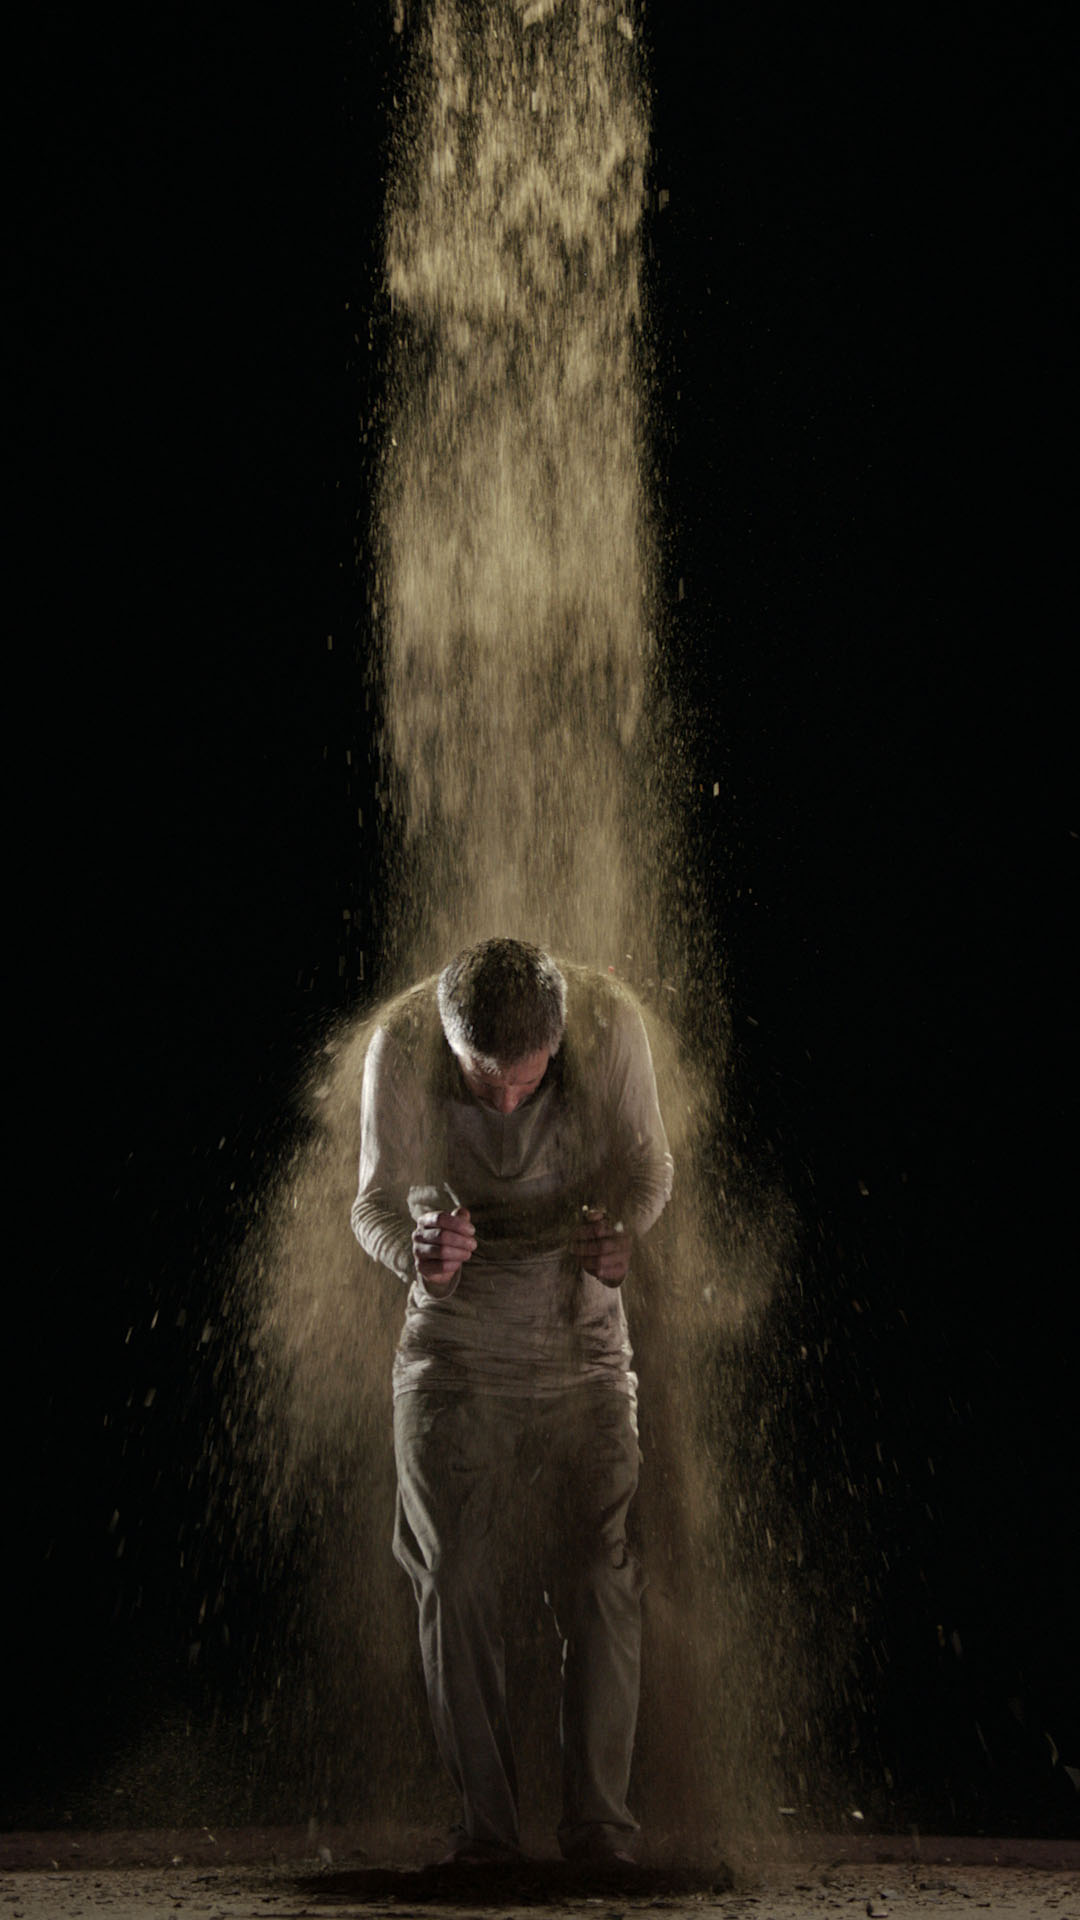 Bill Viola, Earth Martyr, 2014, Color high definition video on flat panel display mounted vertically on wall. Executive producer Kira Perov, Performer Norman Scott